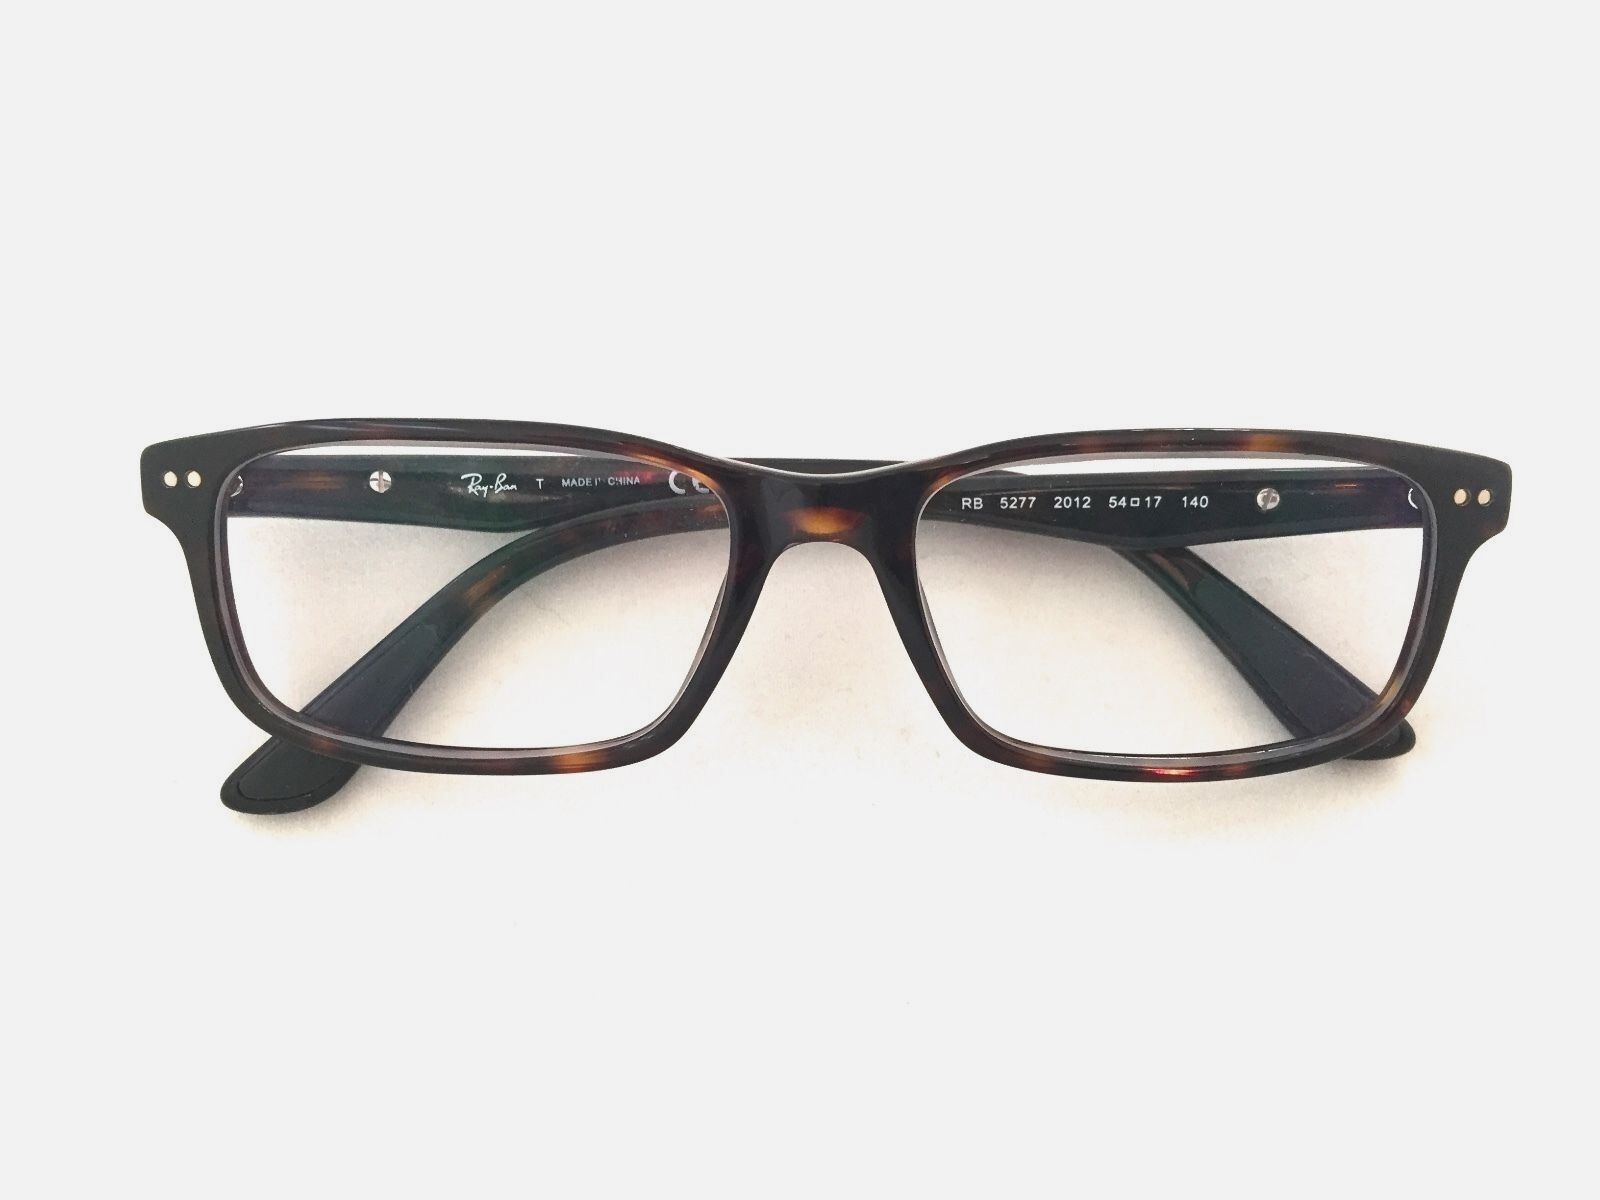 bac8be07ad Authentic Ray Ban Rb5277 2012 Dark Havana 52mm Frames Eyeglasses RX for  sale online